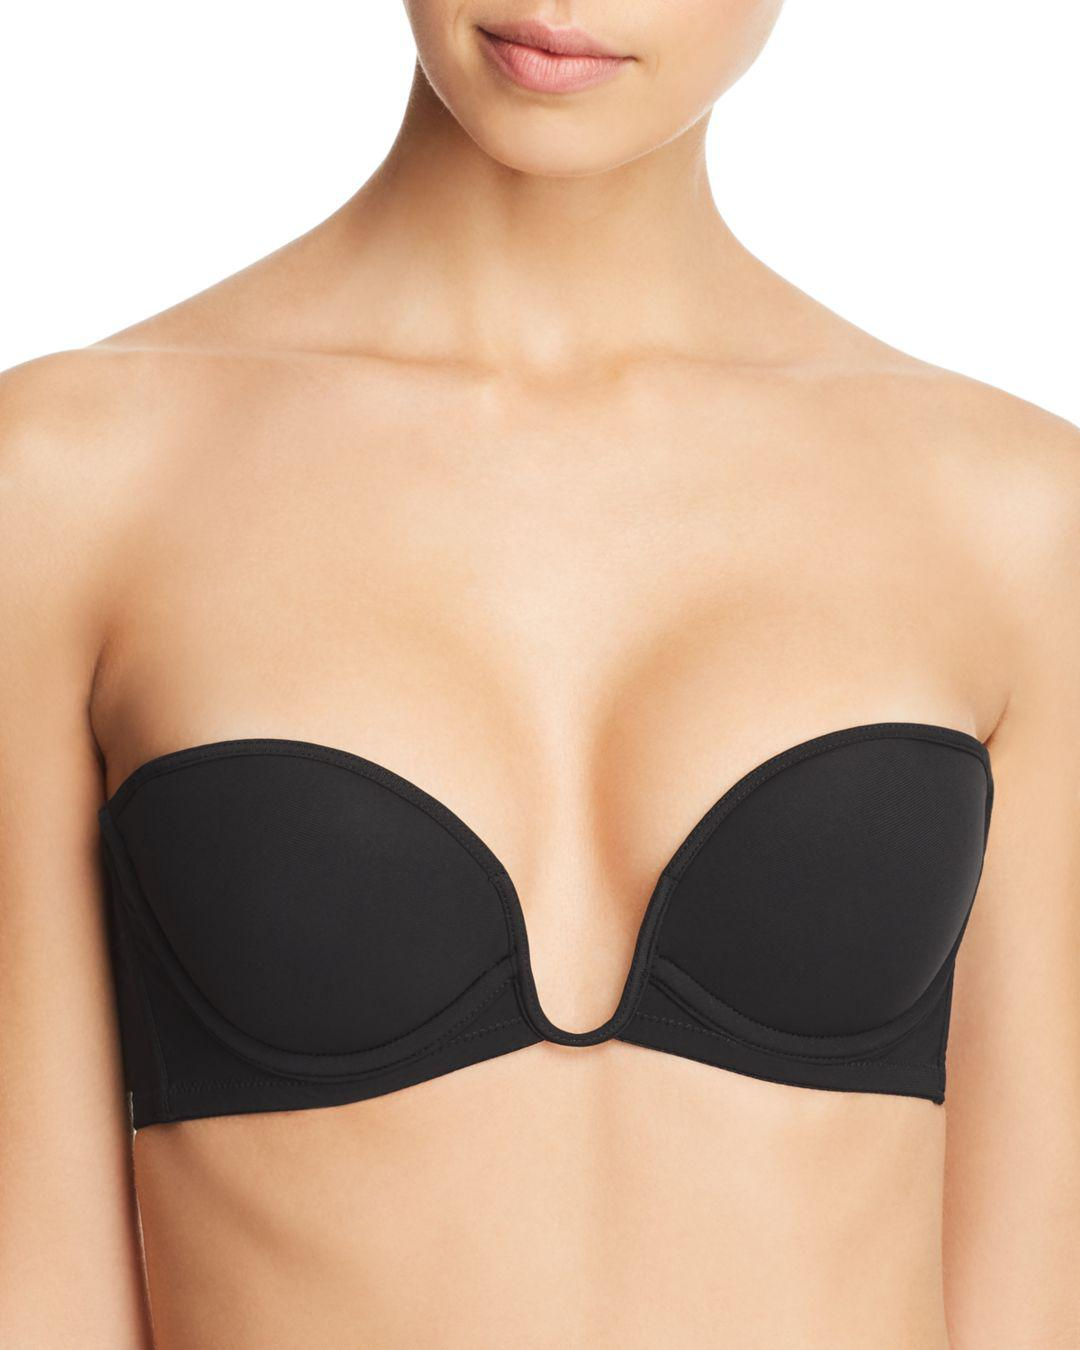 51c696539b514 La Perla Second Skin Convertible Strapless Push-up U-wire Bra in ...